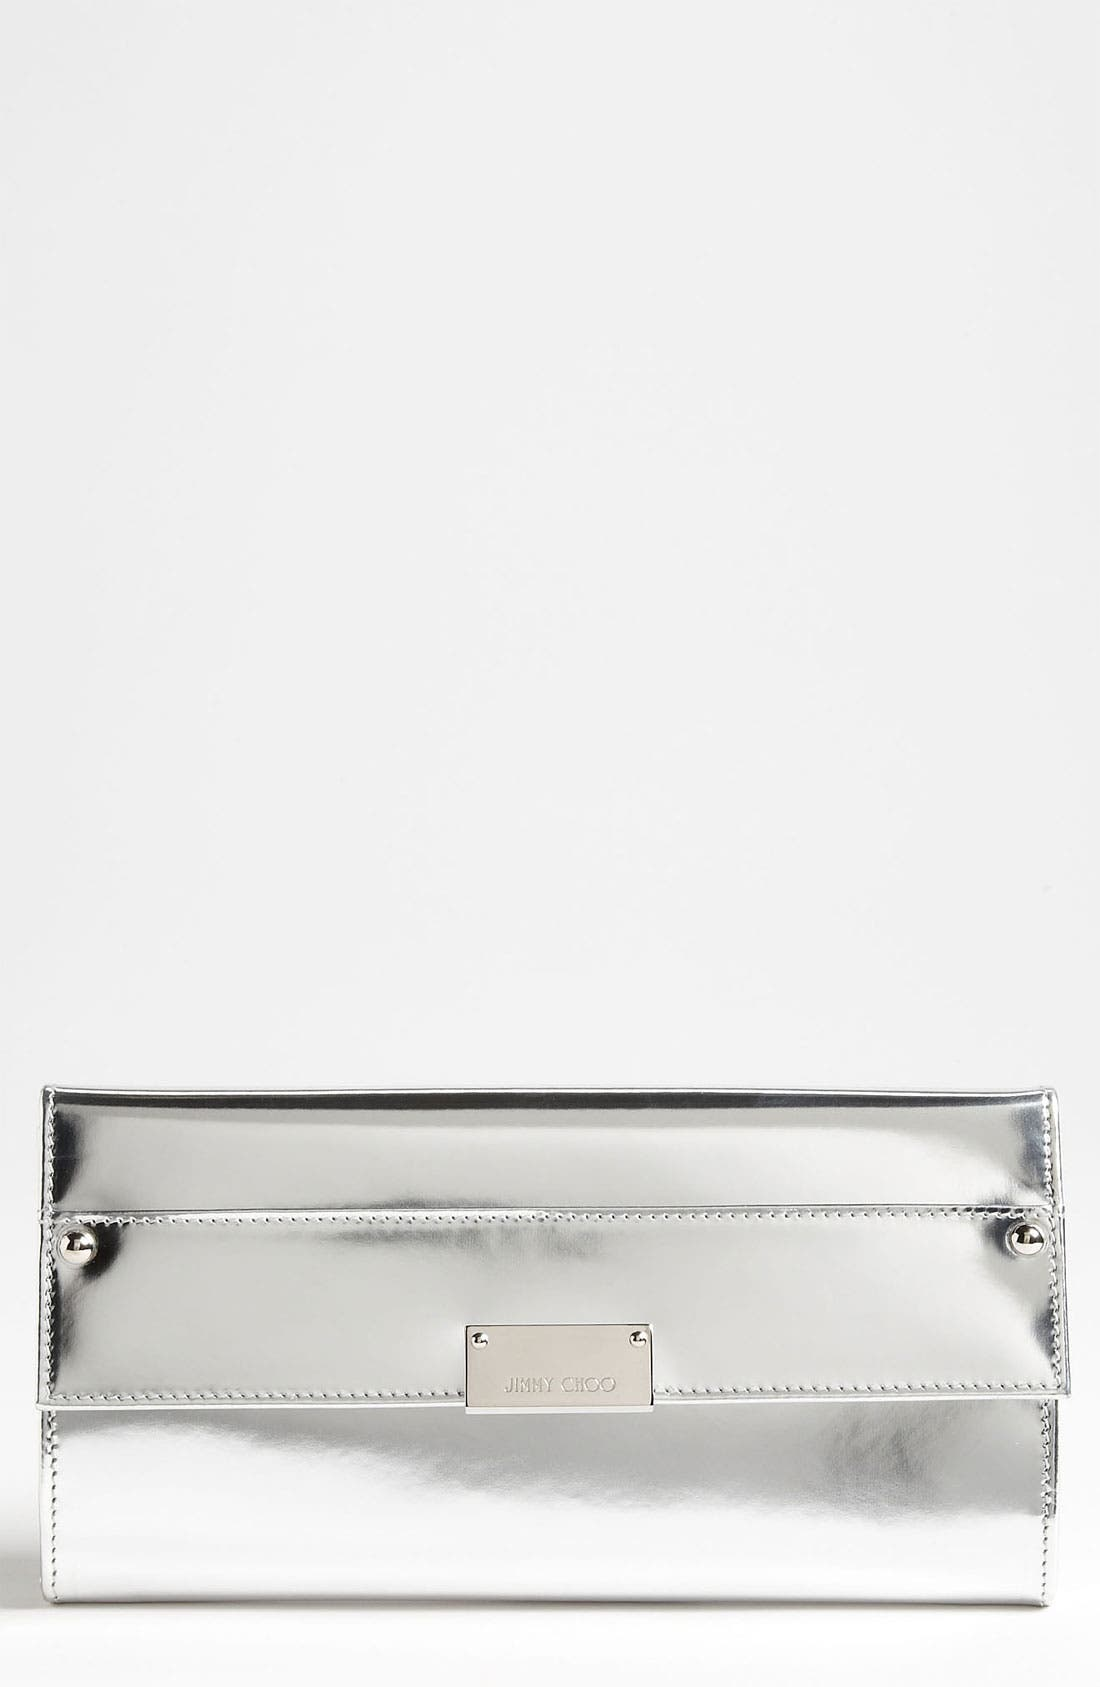 Alternate Image 1 Selected - Jimmy Choo 'Reese' Metallic Leather Clutch